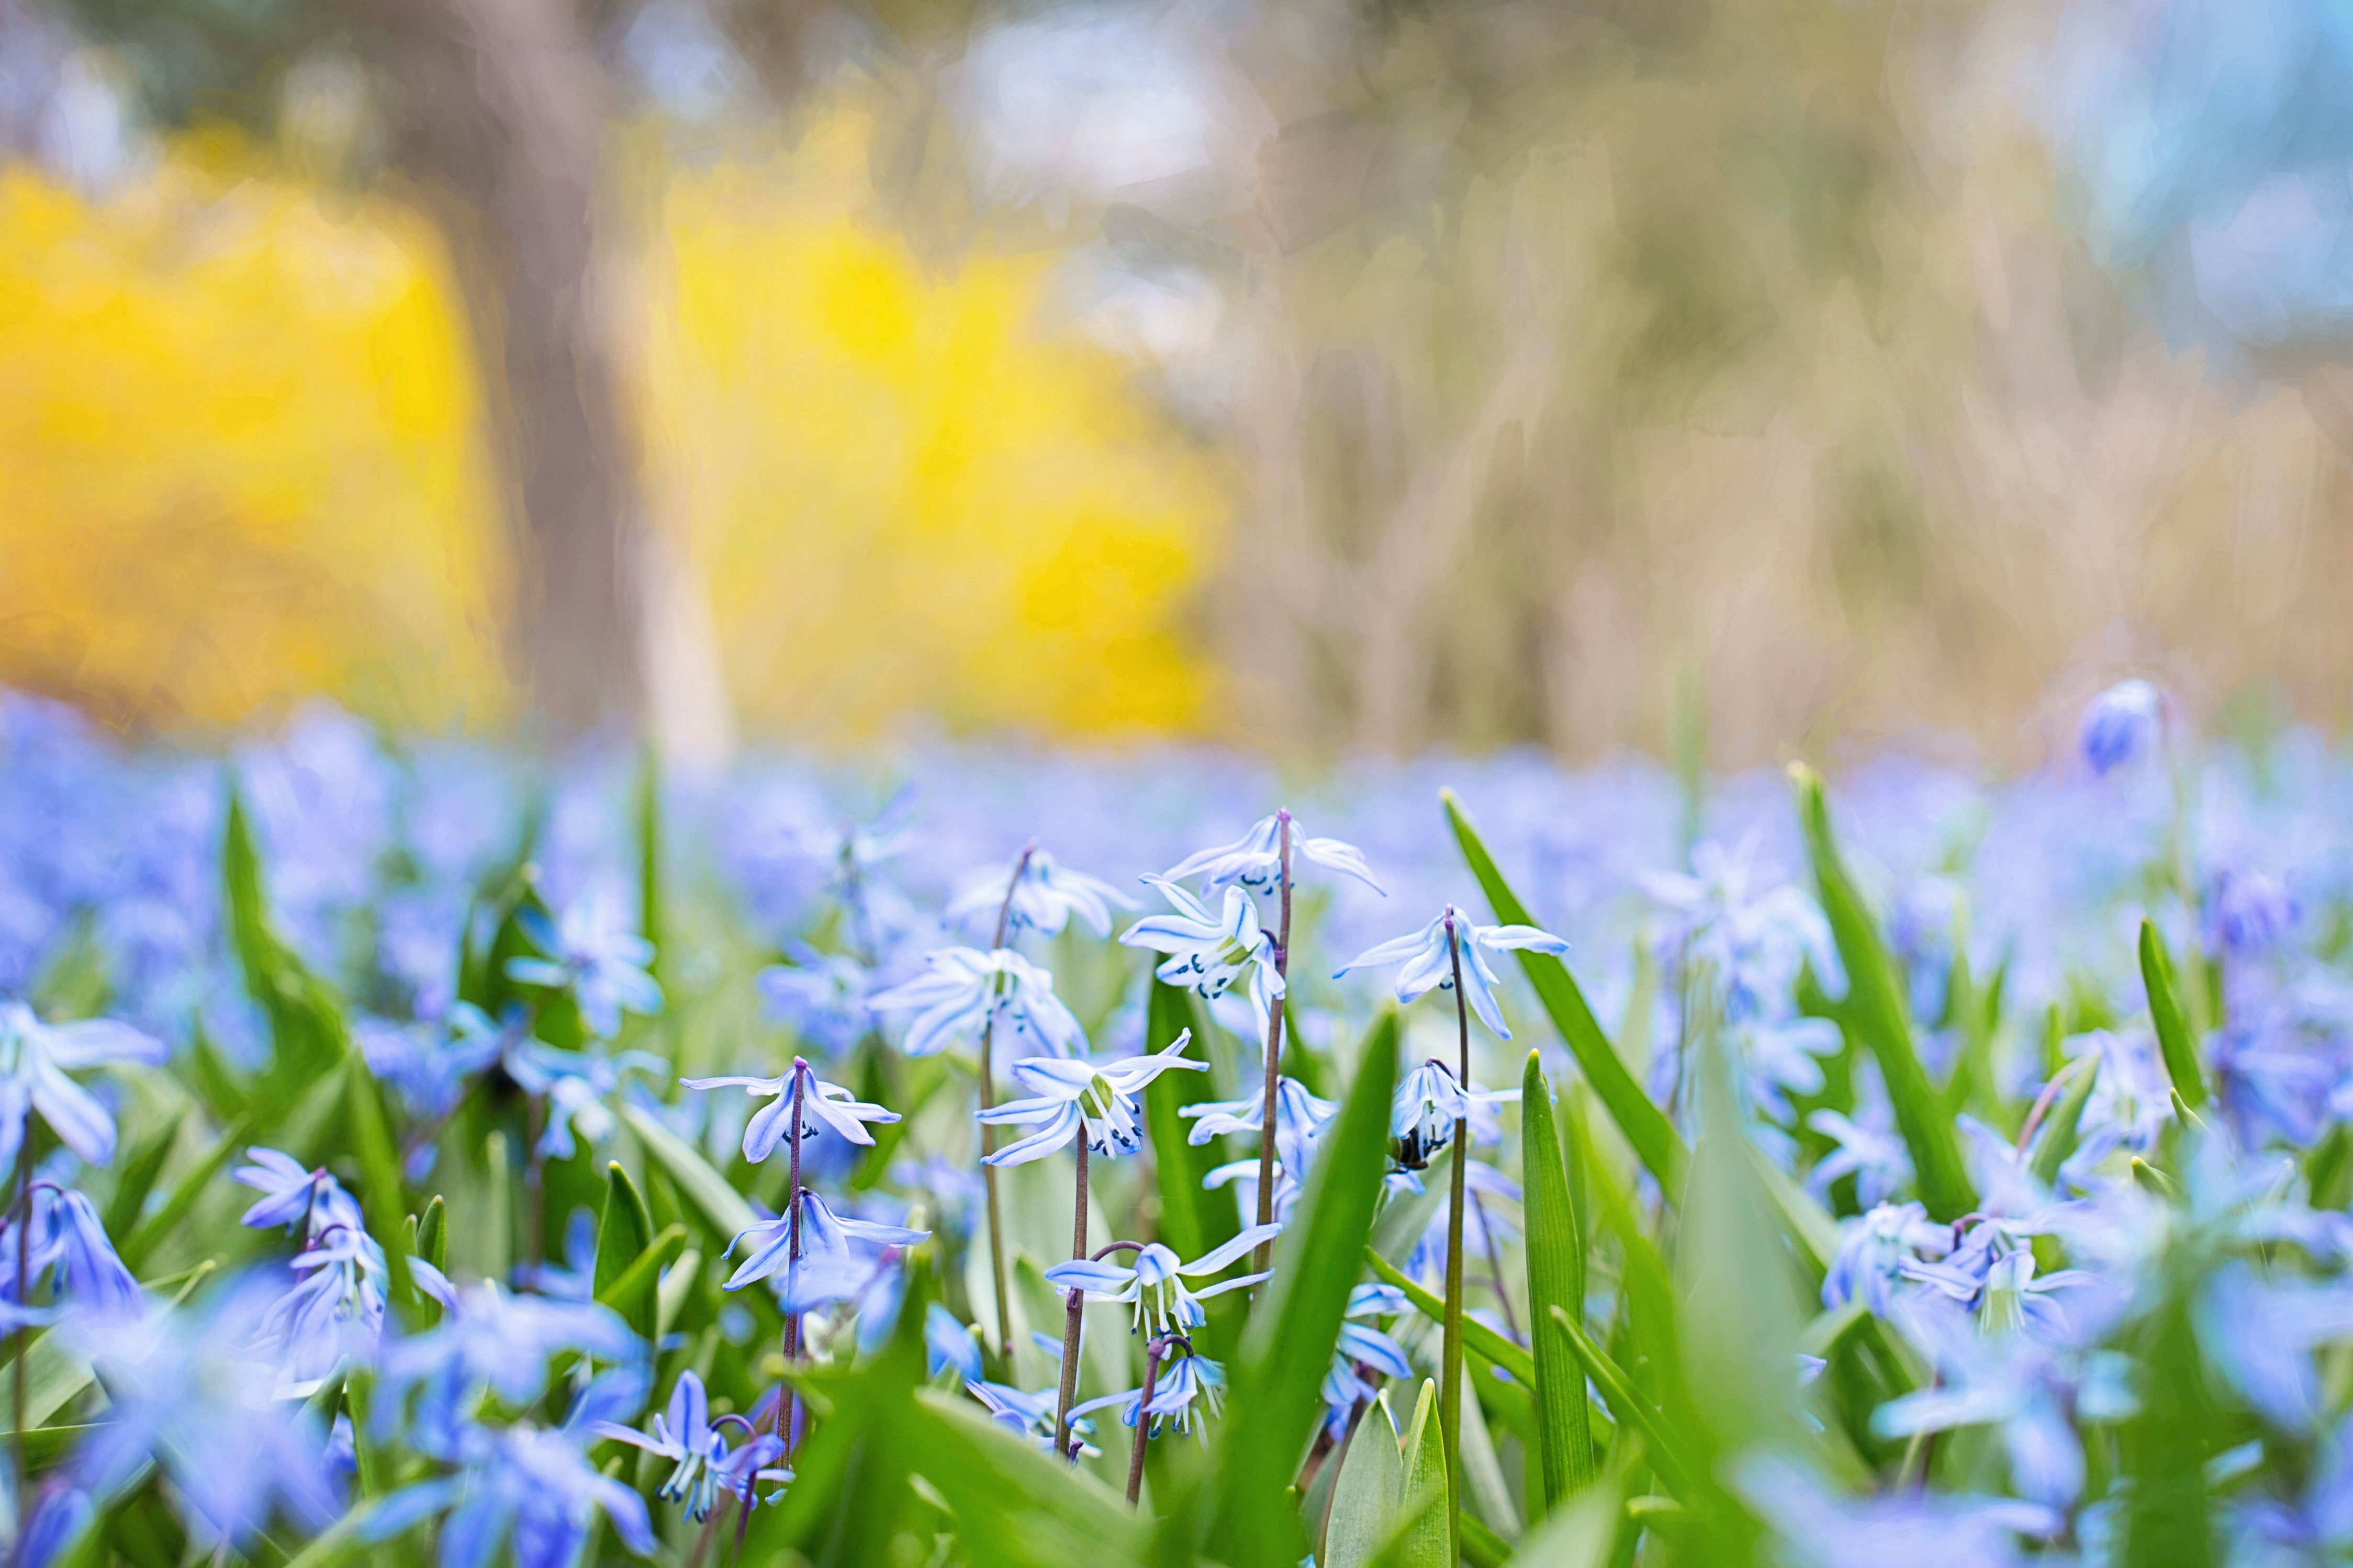 157009 download wallpaper Nature, Grass, Field, Blur, Smooth, Flowers screensavers and pictures for free